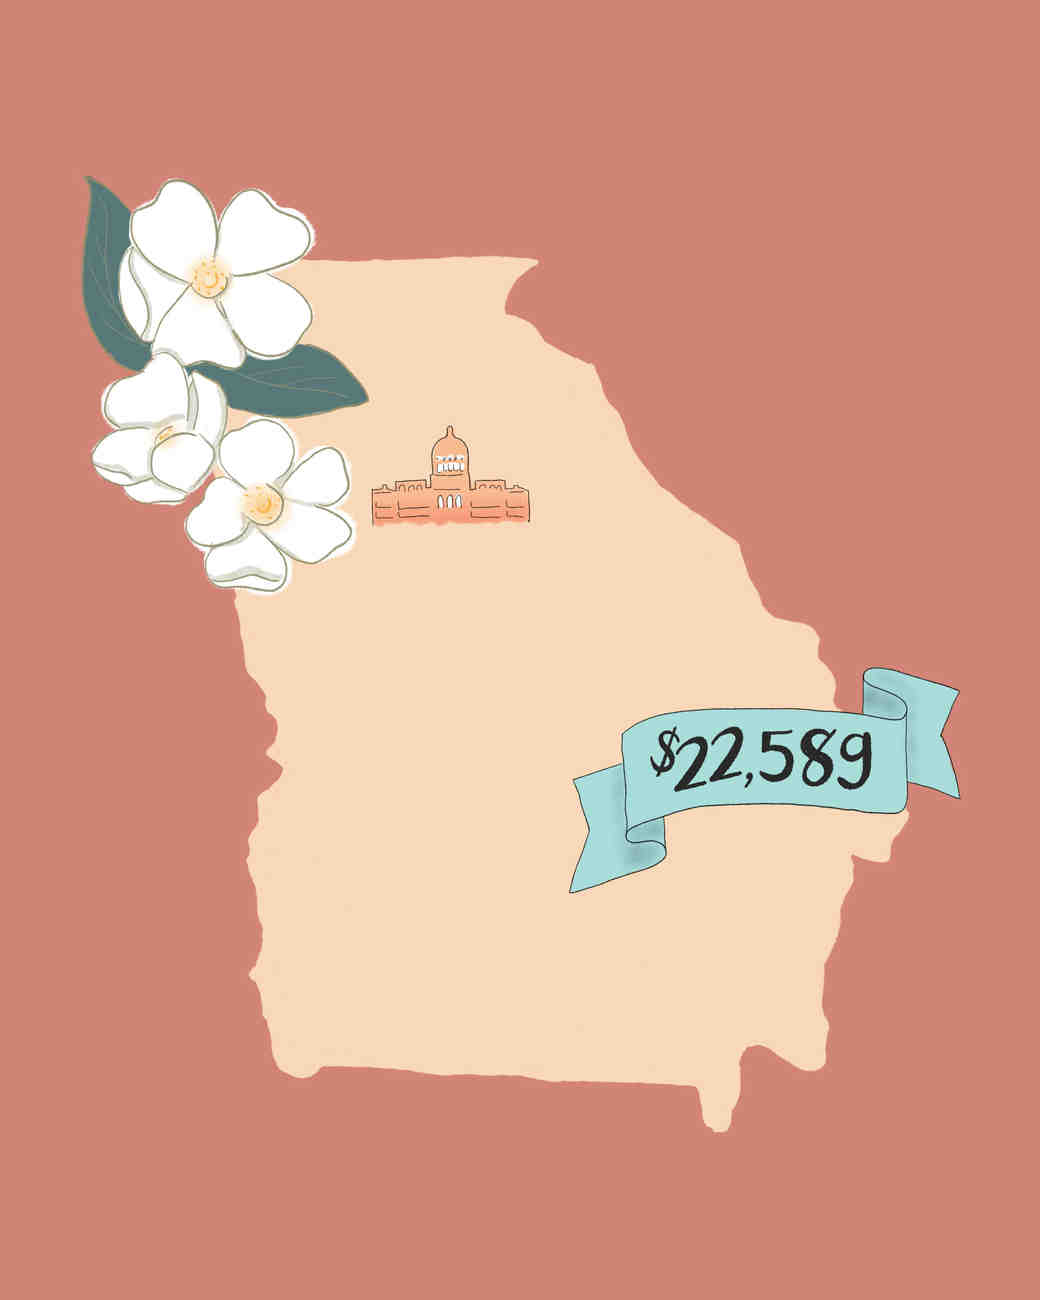 state wedding costs illustration georgia